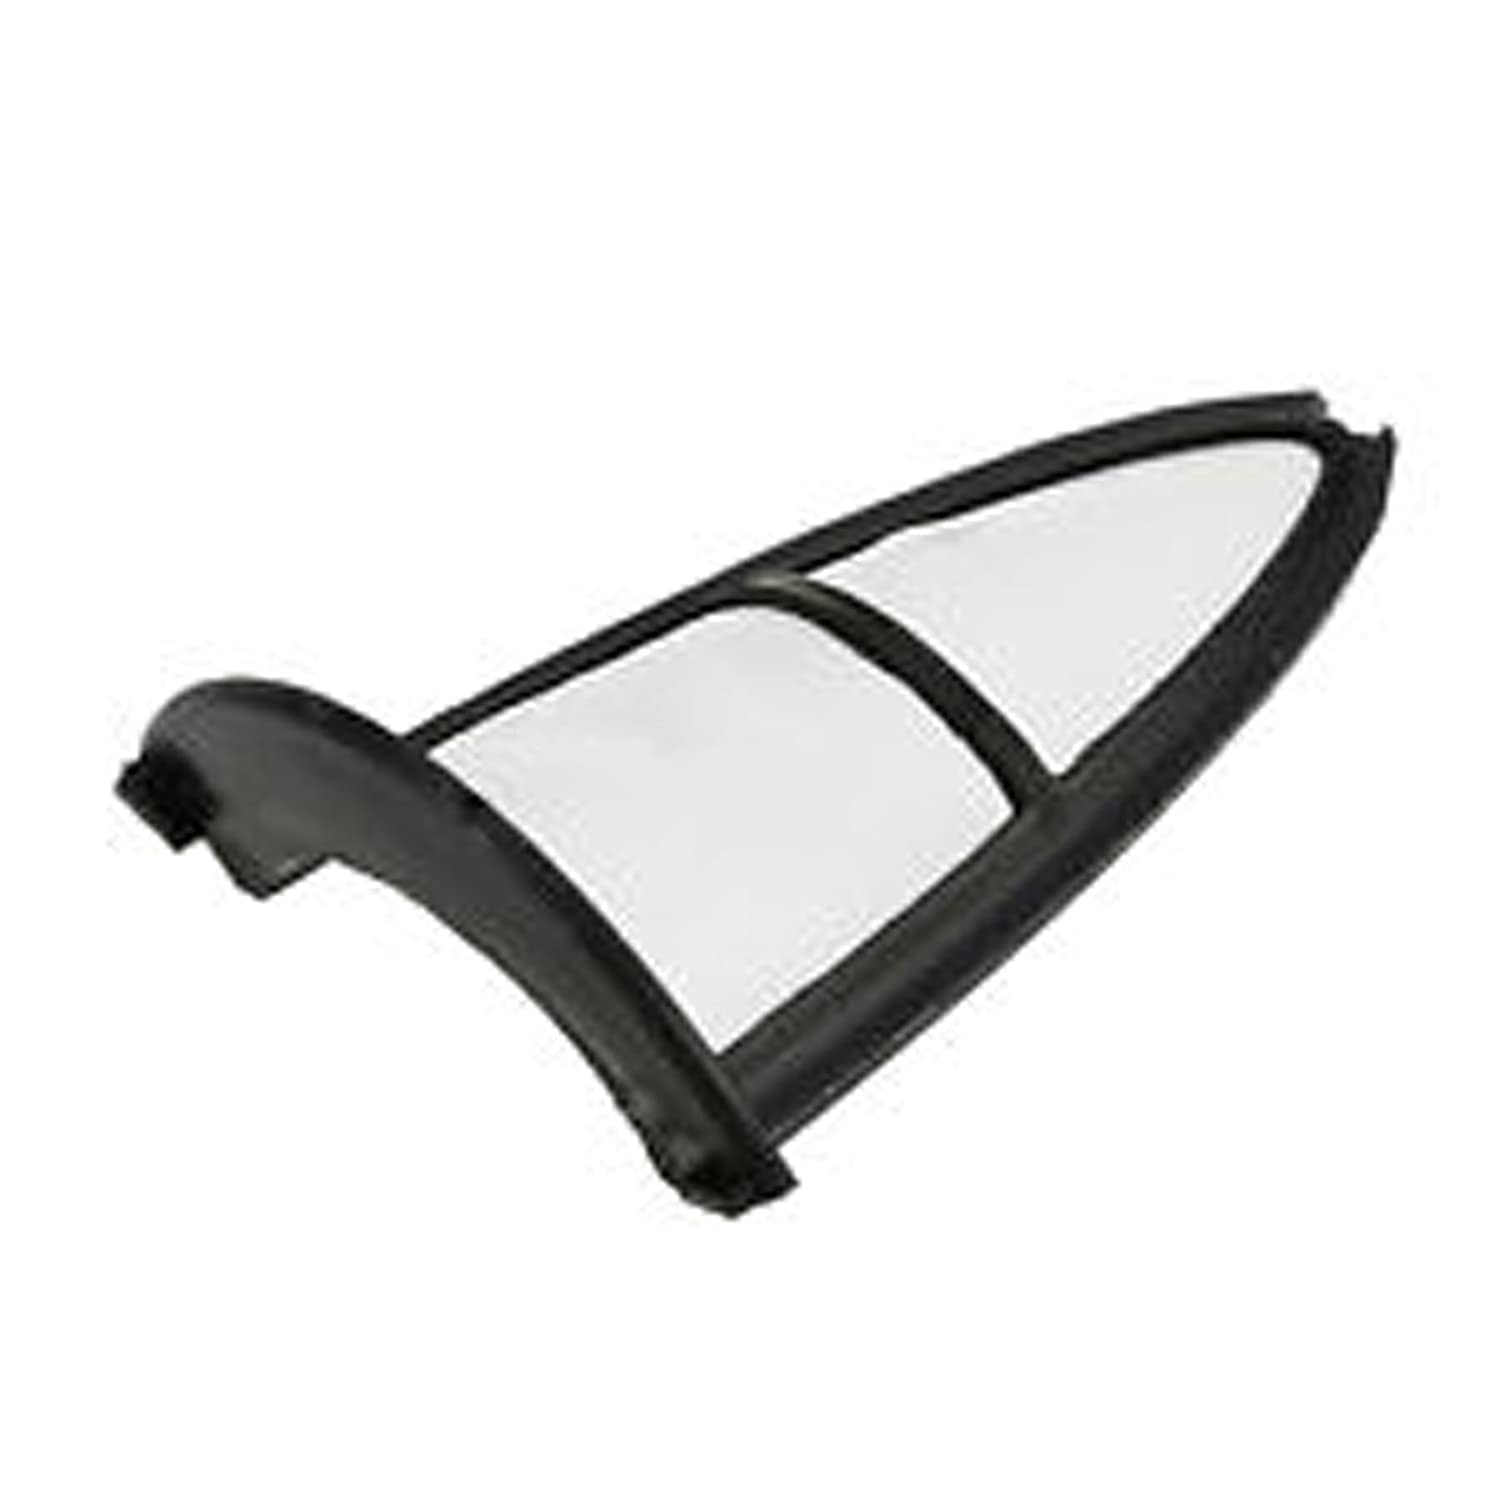 Morphy Richards 43827 Replacement Kettle Spout Filter